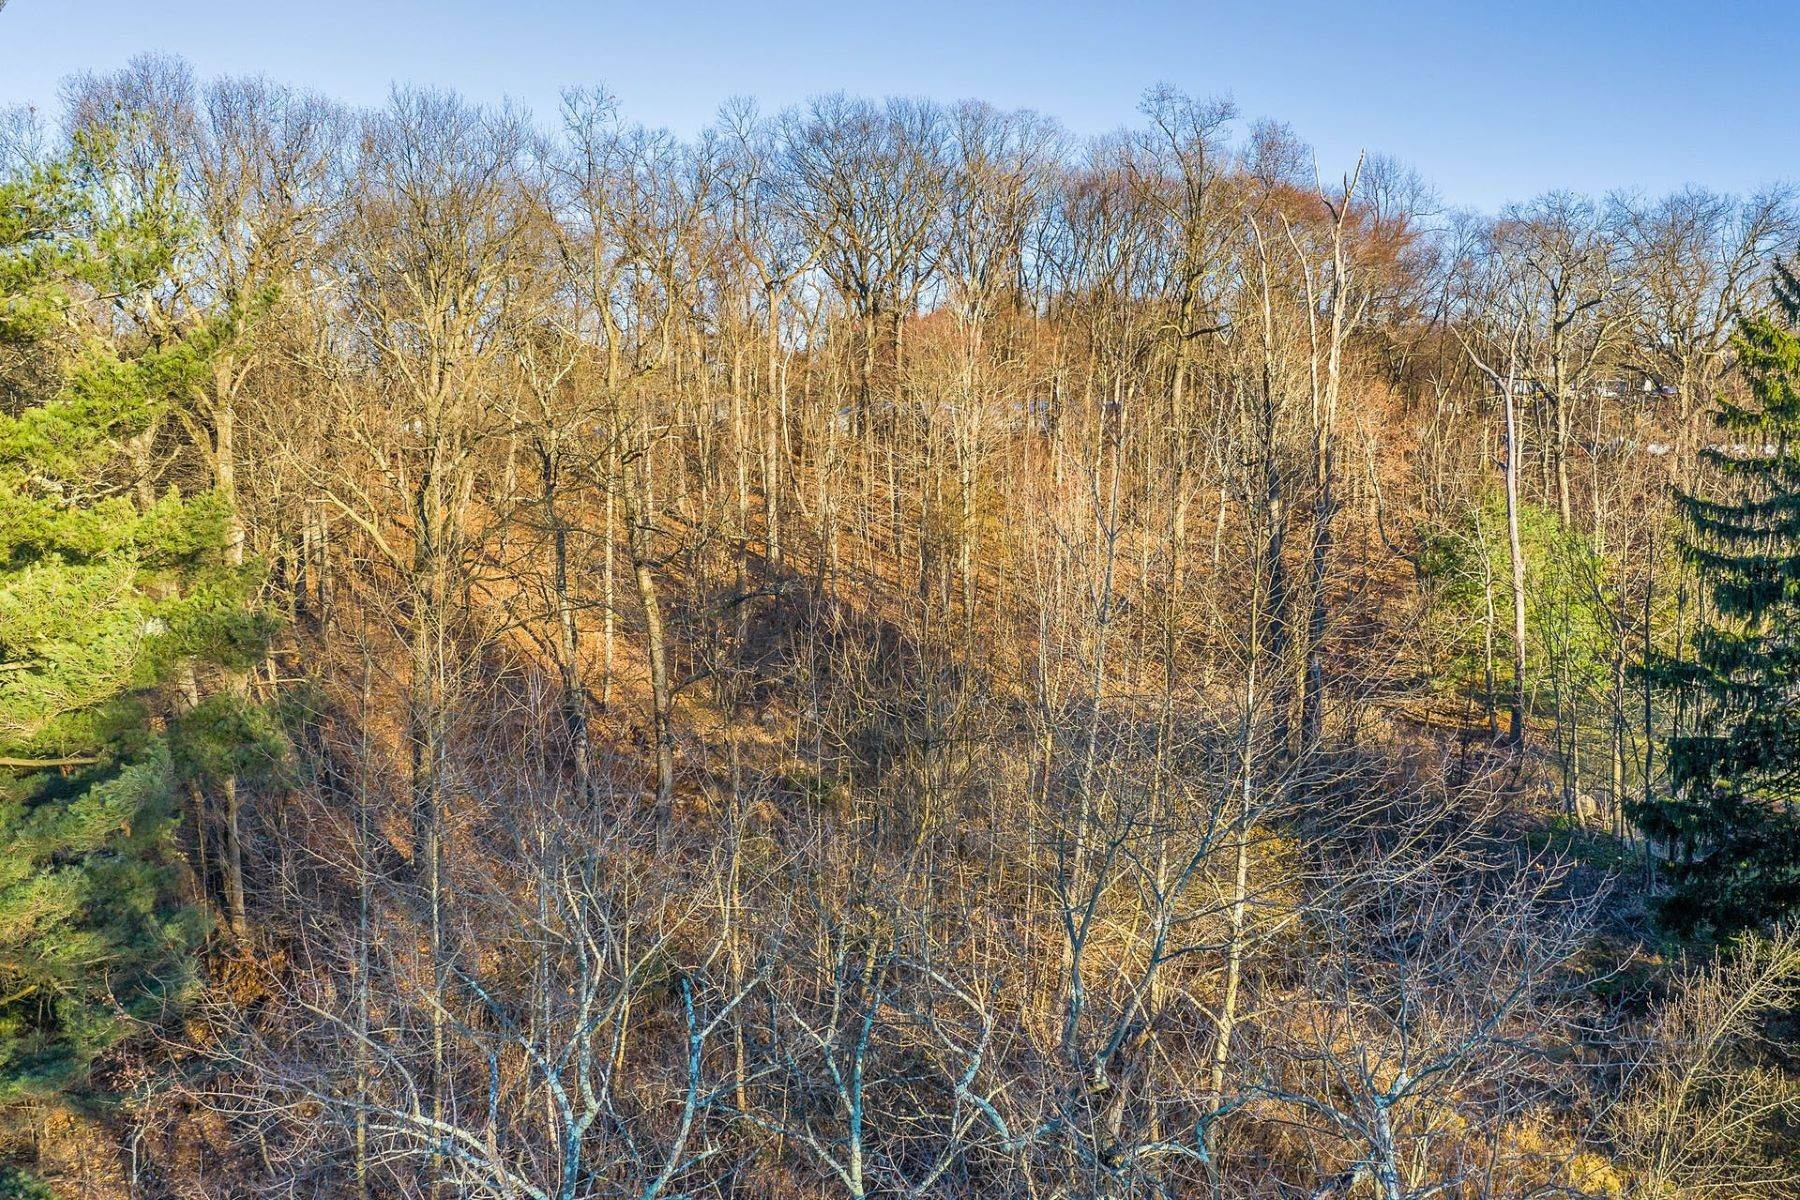 Land for Sale at Land - 64 Ridgeview Terrace Wayne NJ 07470 64 Ridgeview Terrace Wayne, New Jersey 07470 United States